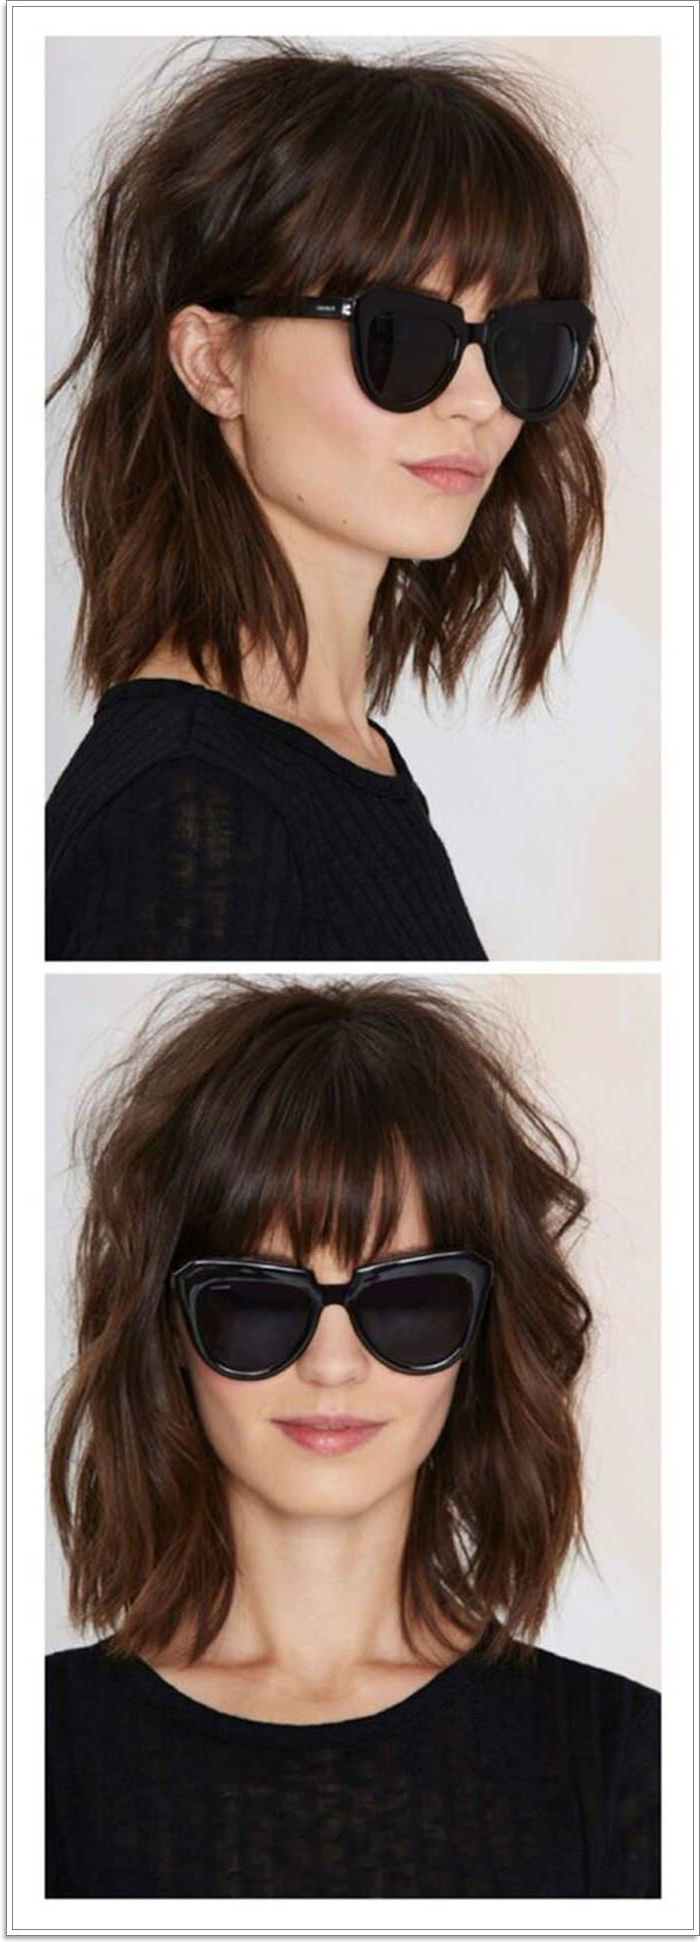 111 Hairstyles With Different Bangs Regarding 2017 Perfect Bangs And Wild Layers Hairstyles (View 1 of 20)